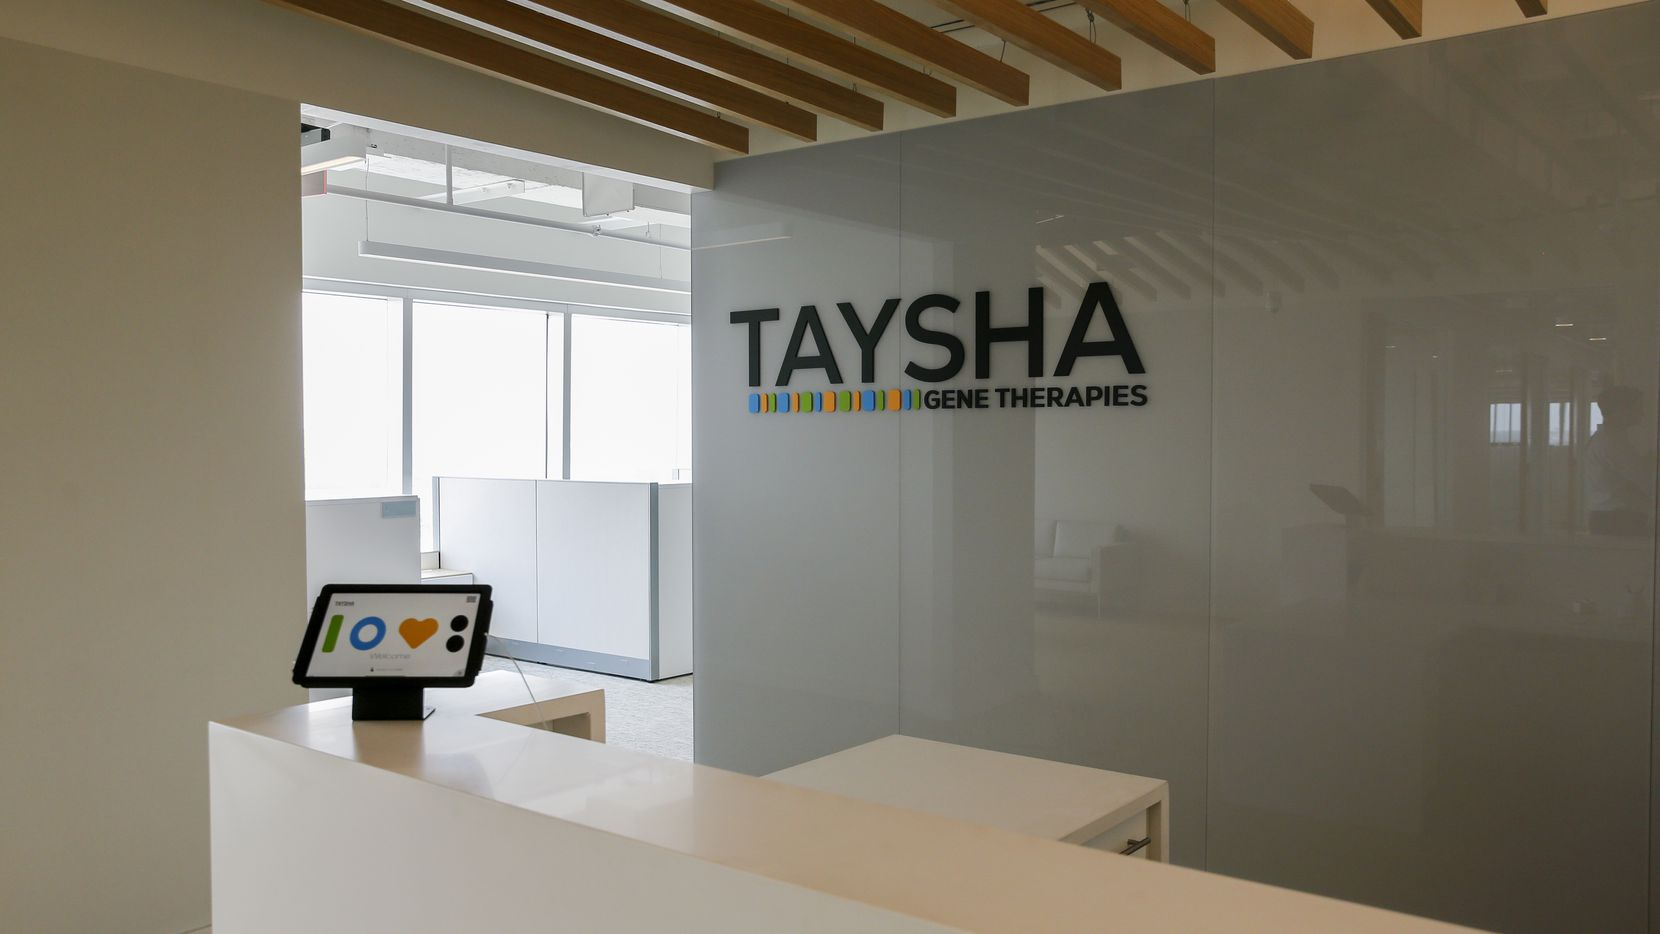 The front desk of the Taysha Gene Therapies office at Pegasus Park in Dallas.